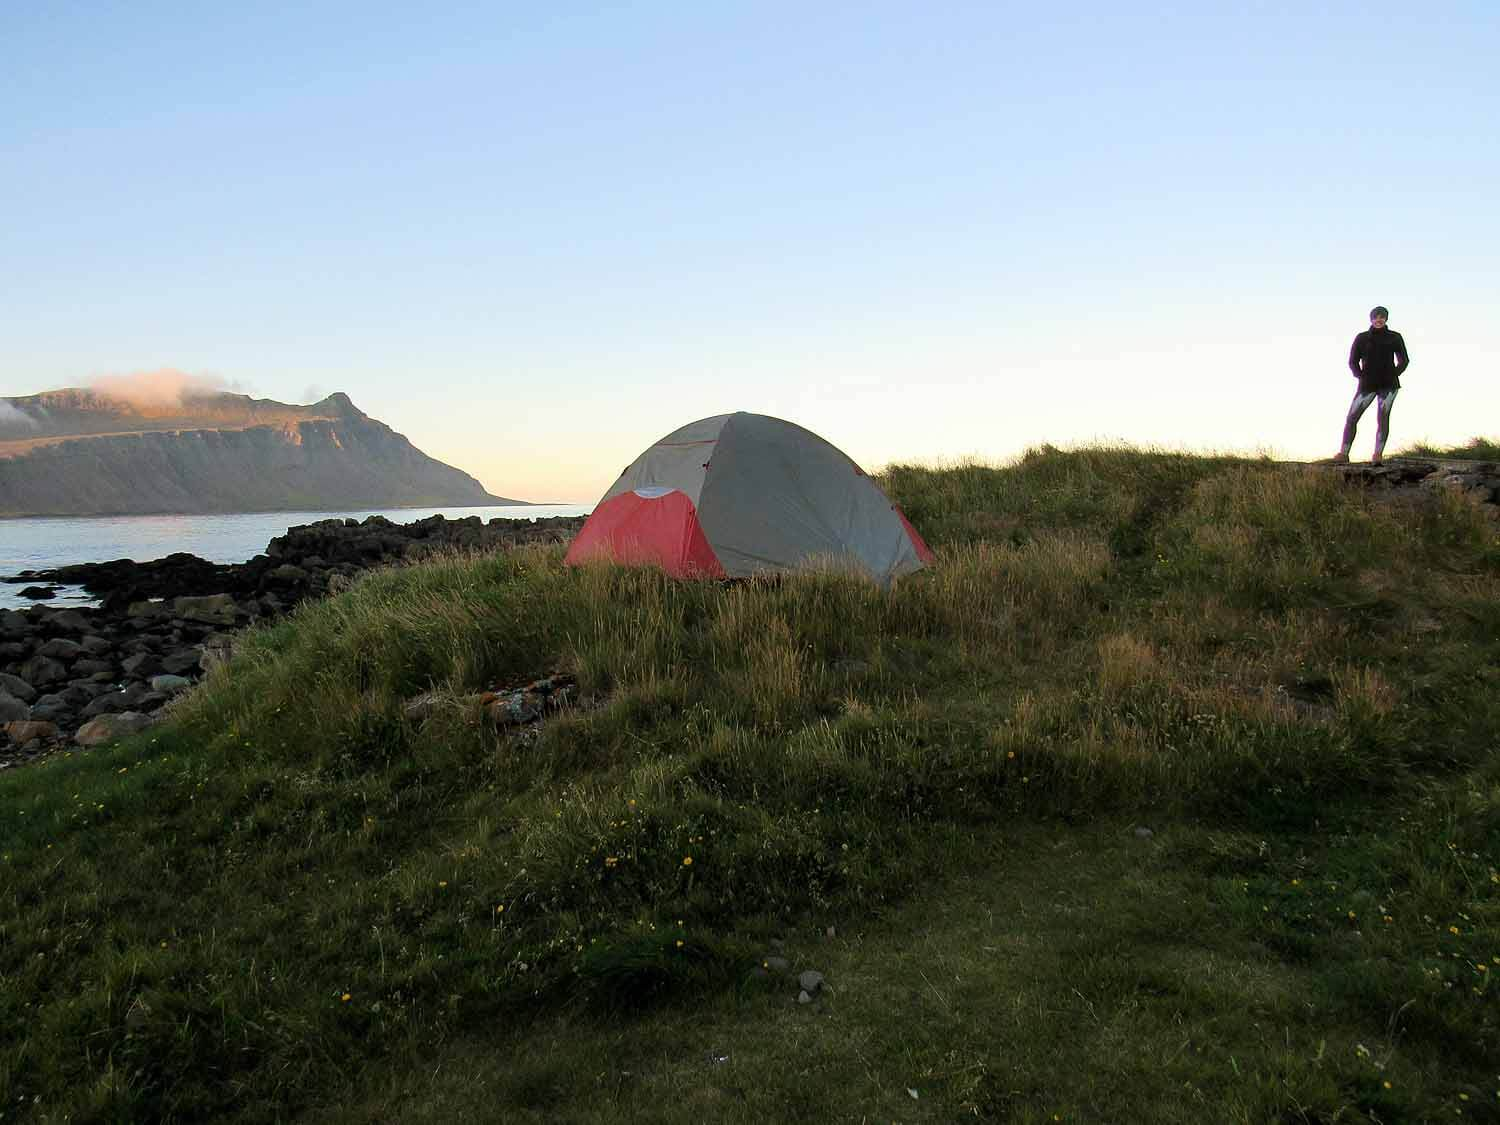 iceland-east-eastfjords-camping-tent-fishing-village-sunset.JPG